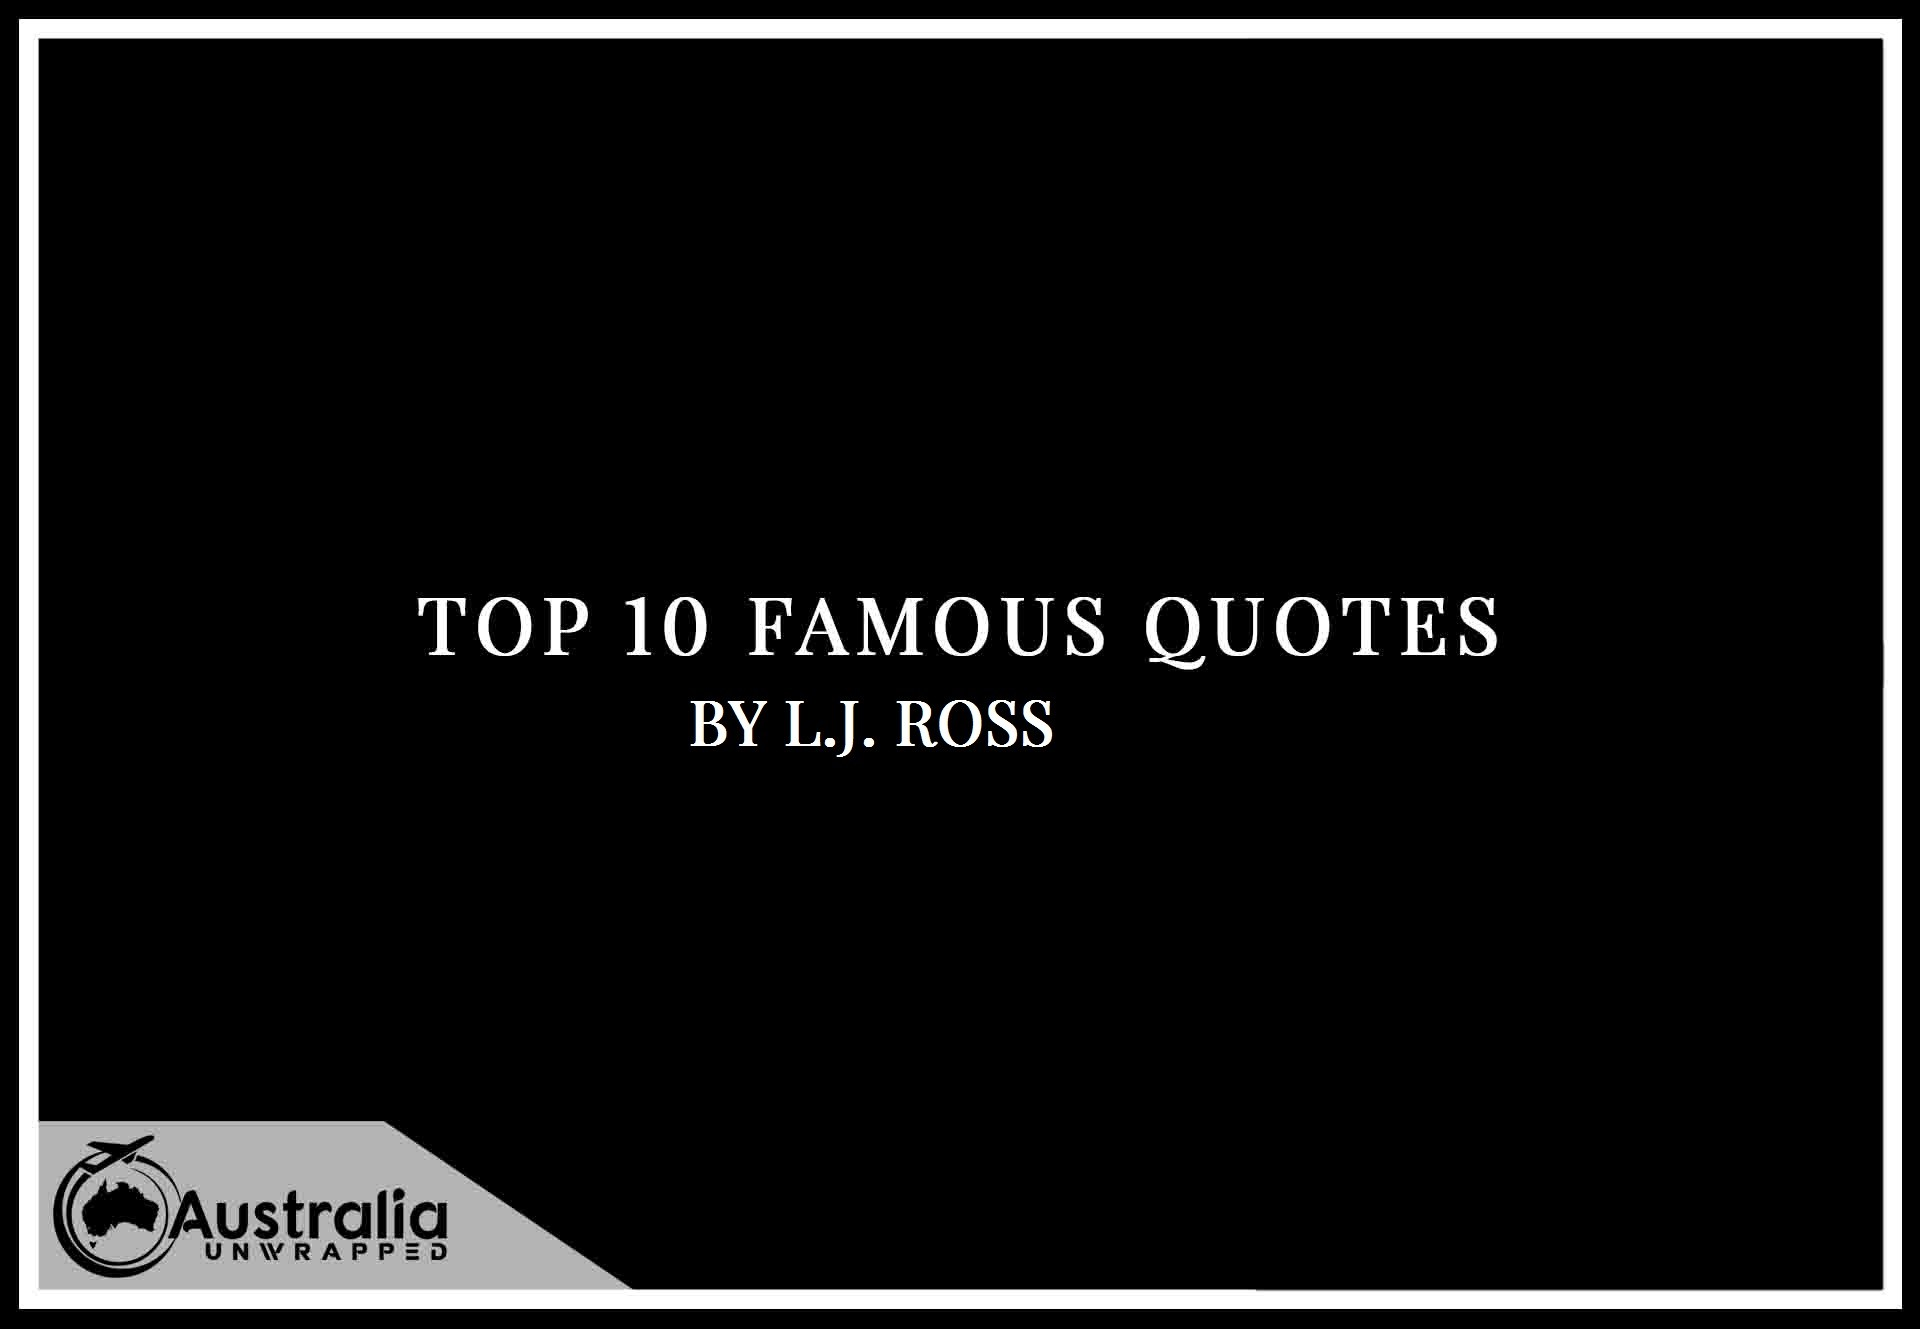 L.J. Ross's Top 10 Popular and Famous Quotes